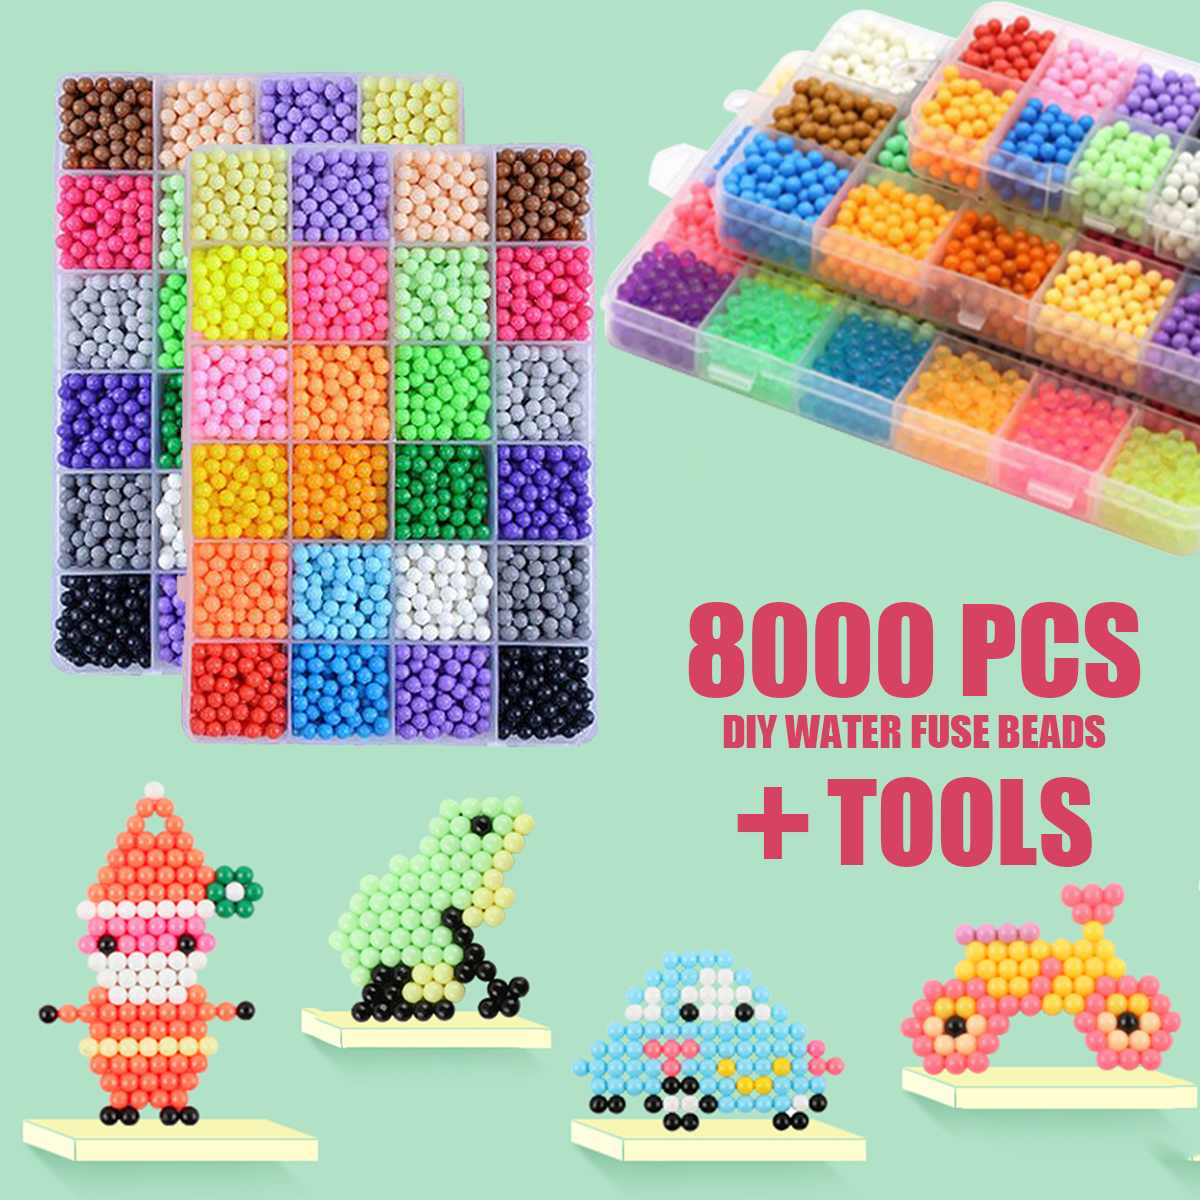 8000pcs Different Color DIY Water Sticky Fuse Beads Plastic Funny Educational Toys Kid Crafts Birthday Christmas New Year Gifts8000pcs Different Color DIY Water Sticky Fuse Beads Plastic Funny Educational Toys Kid Crafts Birthday Christmas New Year Gifts